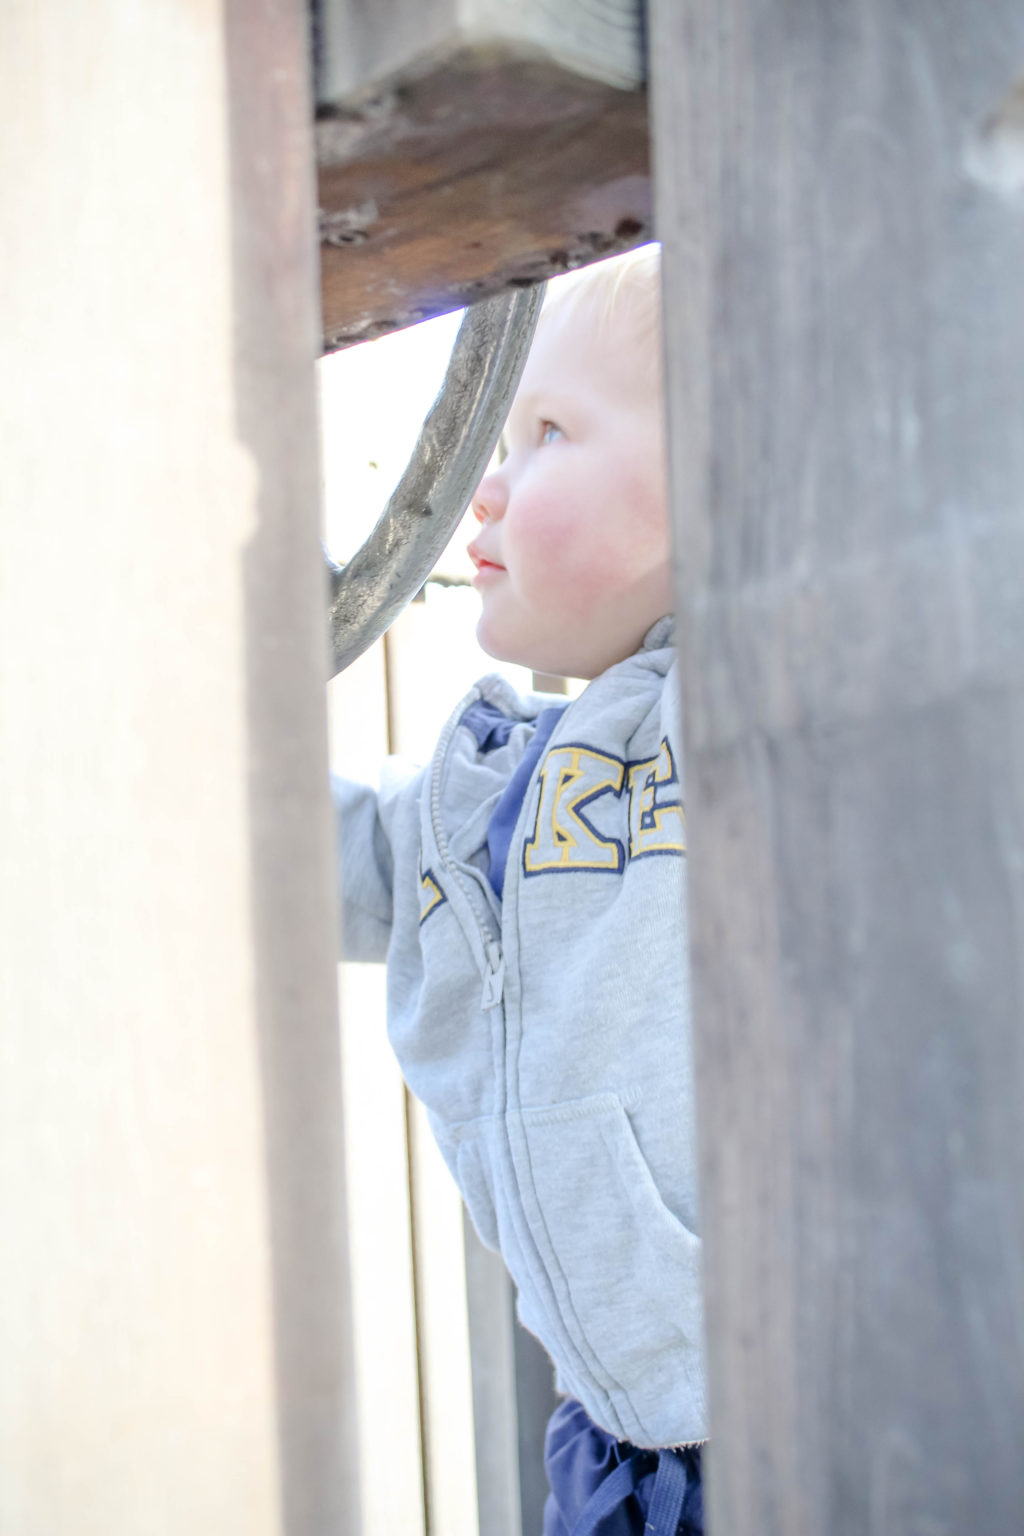 When do the terrible twos start? Is it bad if they don't?